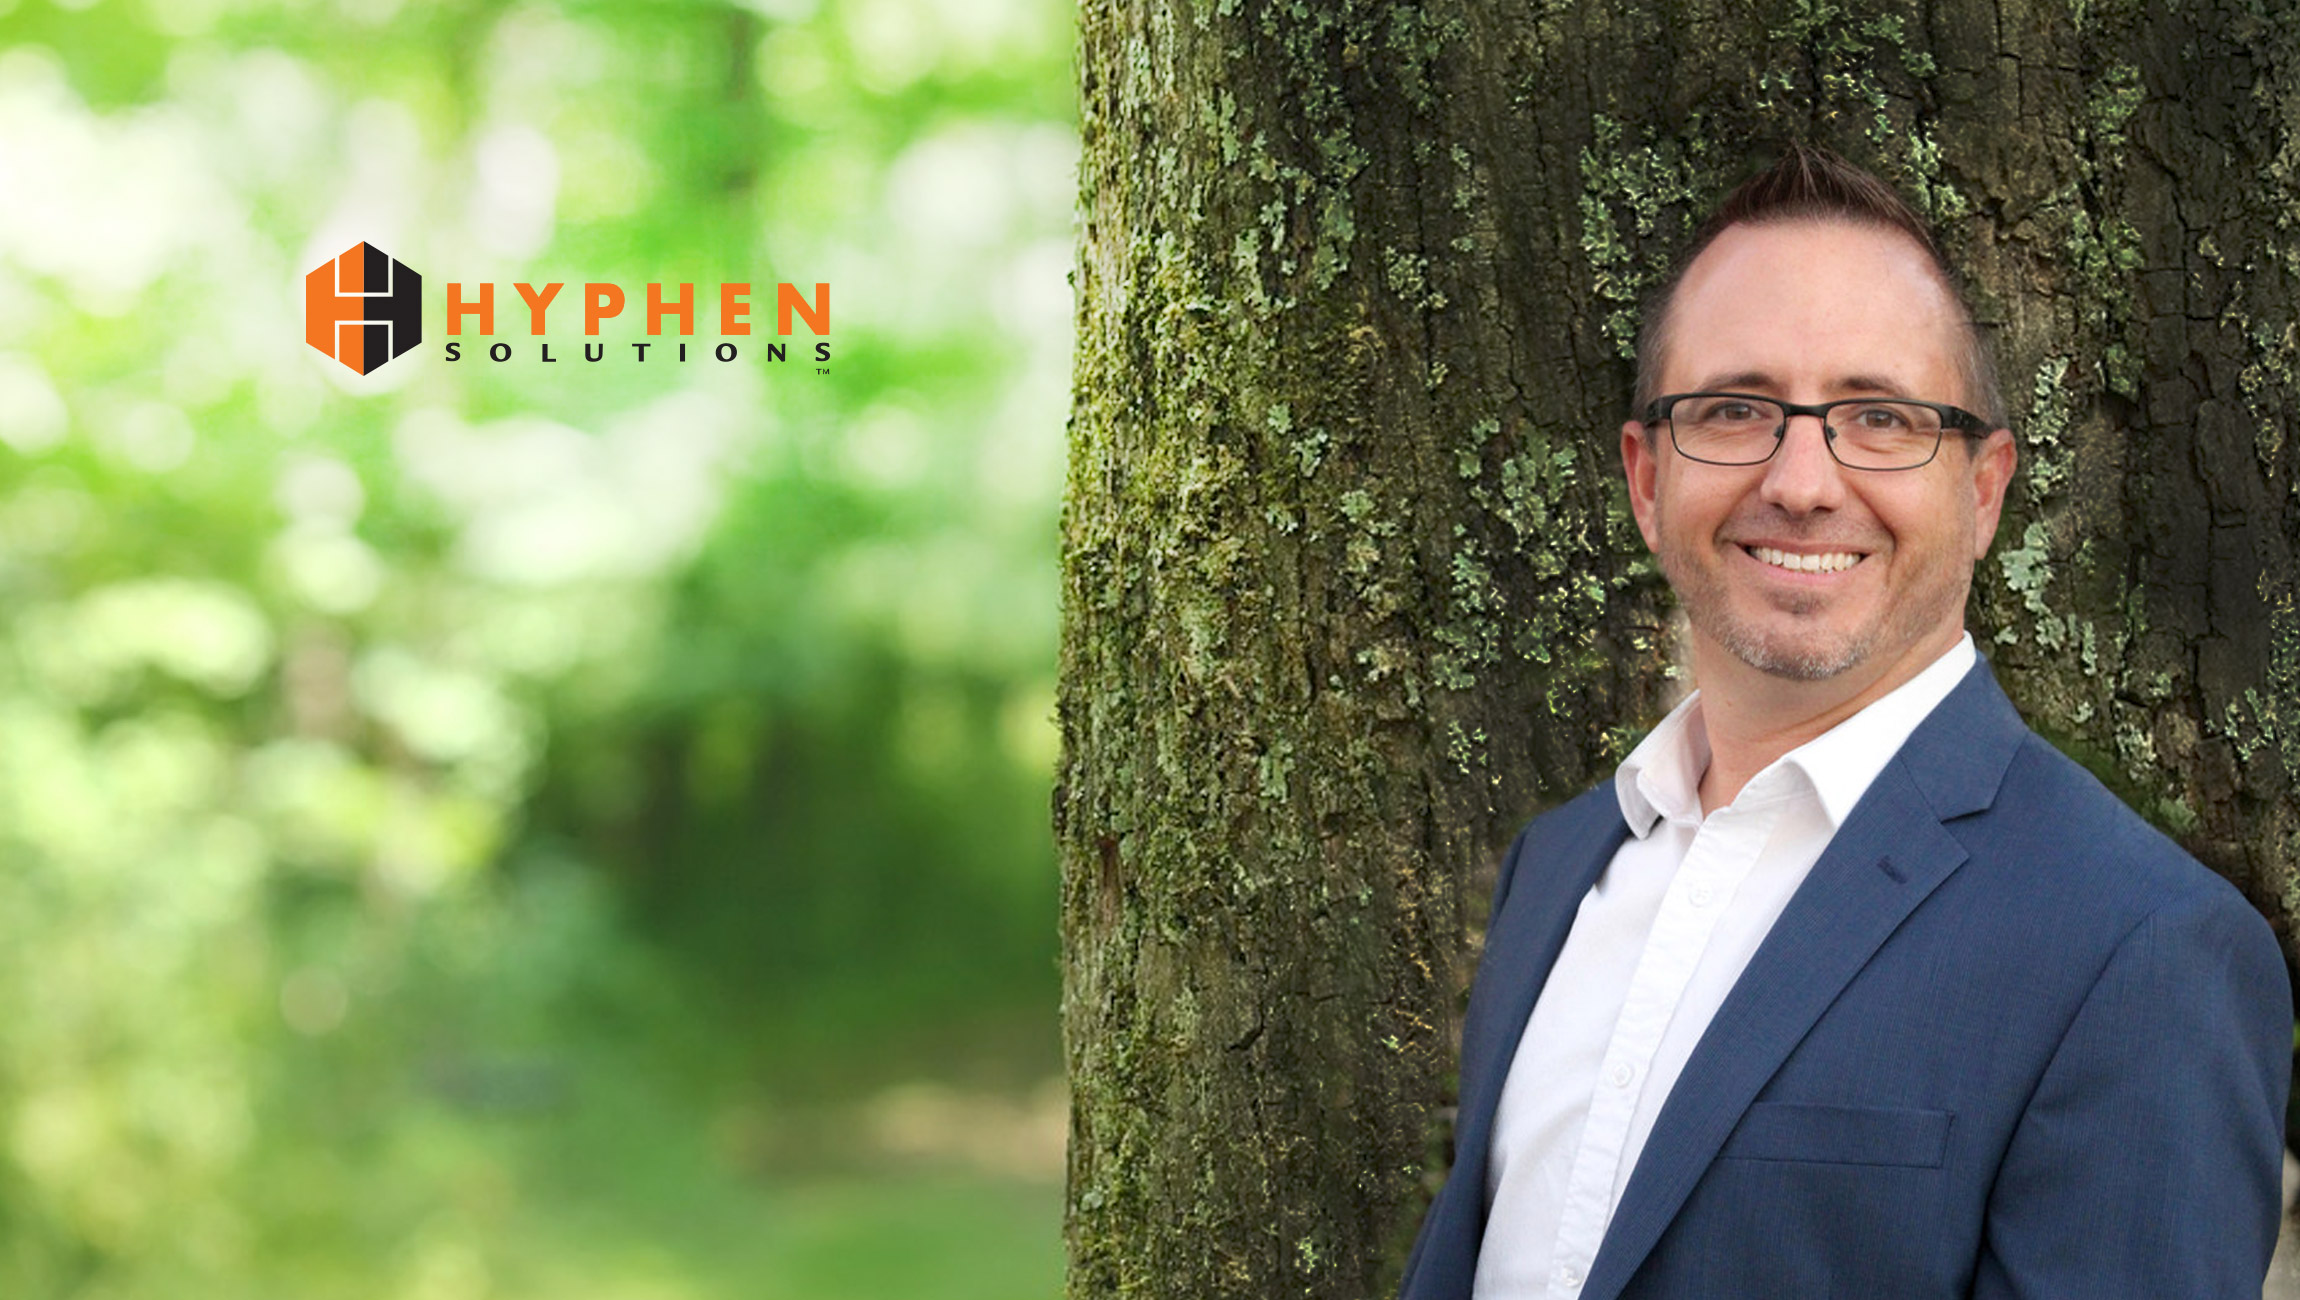 Hyphen Solutions Announces New Vice President of Customer Relationship Management